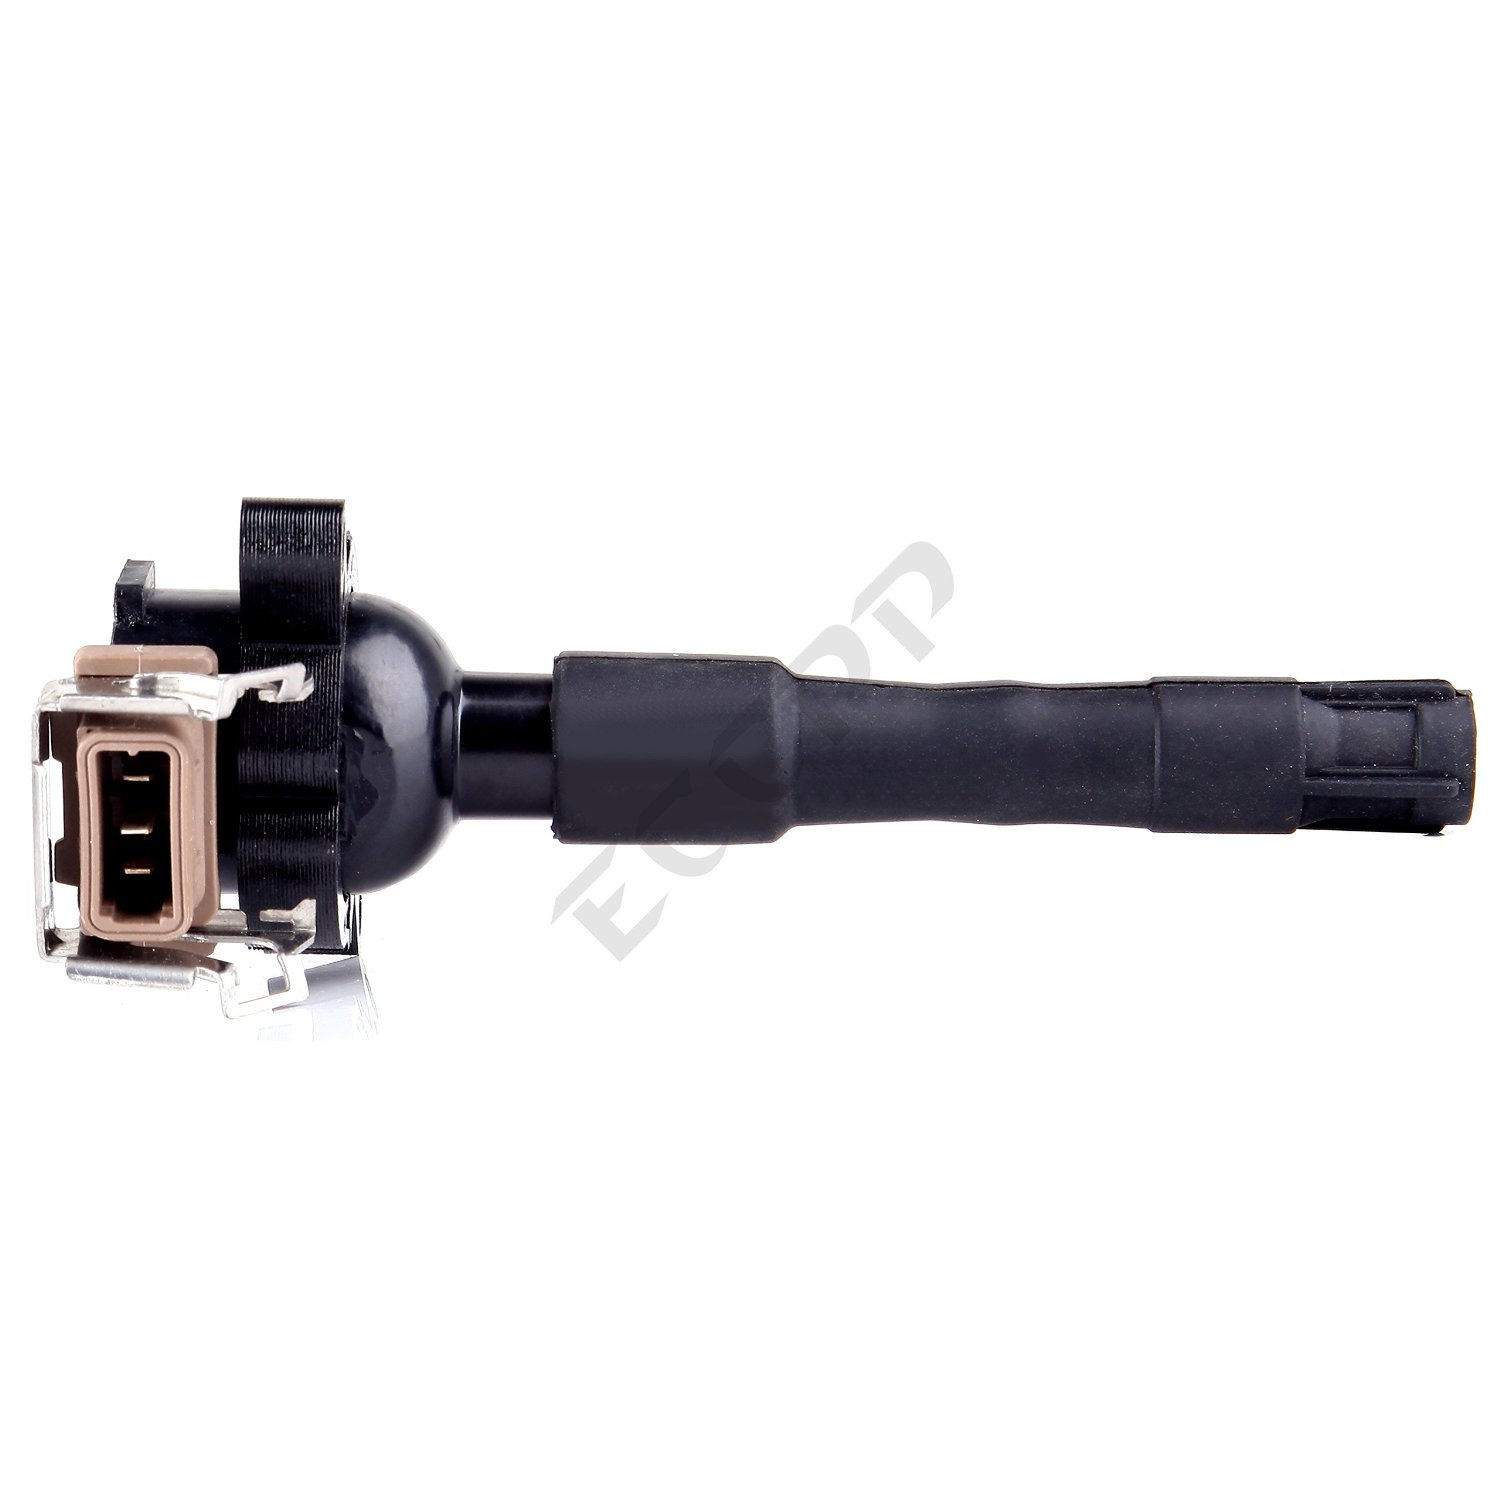 Ignition Coil For BMW E36 E46 E31 E38 E39 E53 323Ci 323is 325i/325Ci/325Xi 330i 328i 328is 330i 330Ci 330Xi 525i 12131404309(China (Mainland))